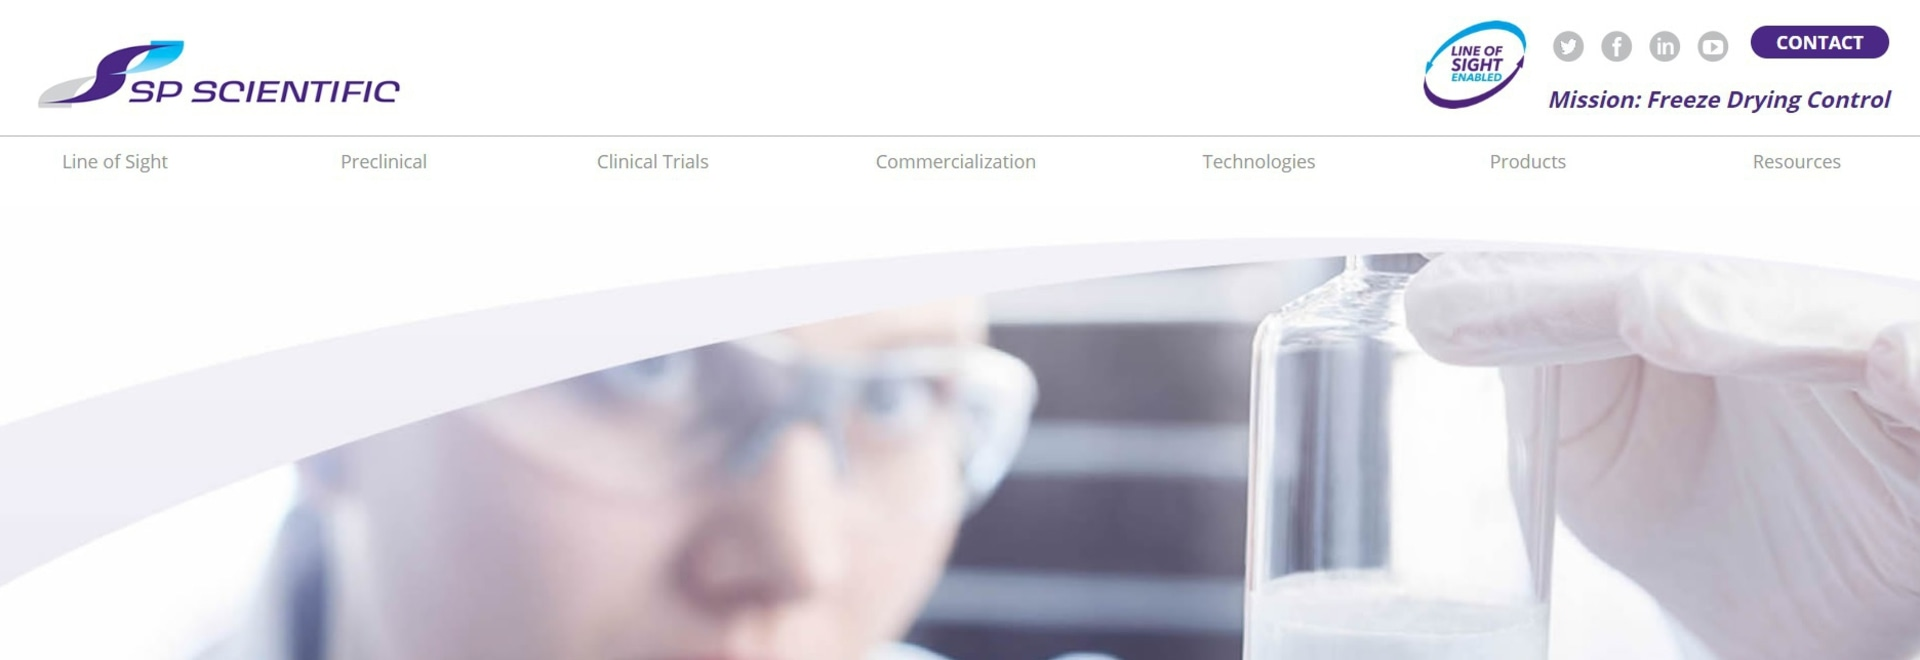 SP Scientific Launches New Microsite Highlighting Its Line of Sight Approach